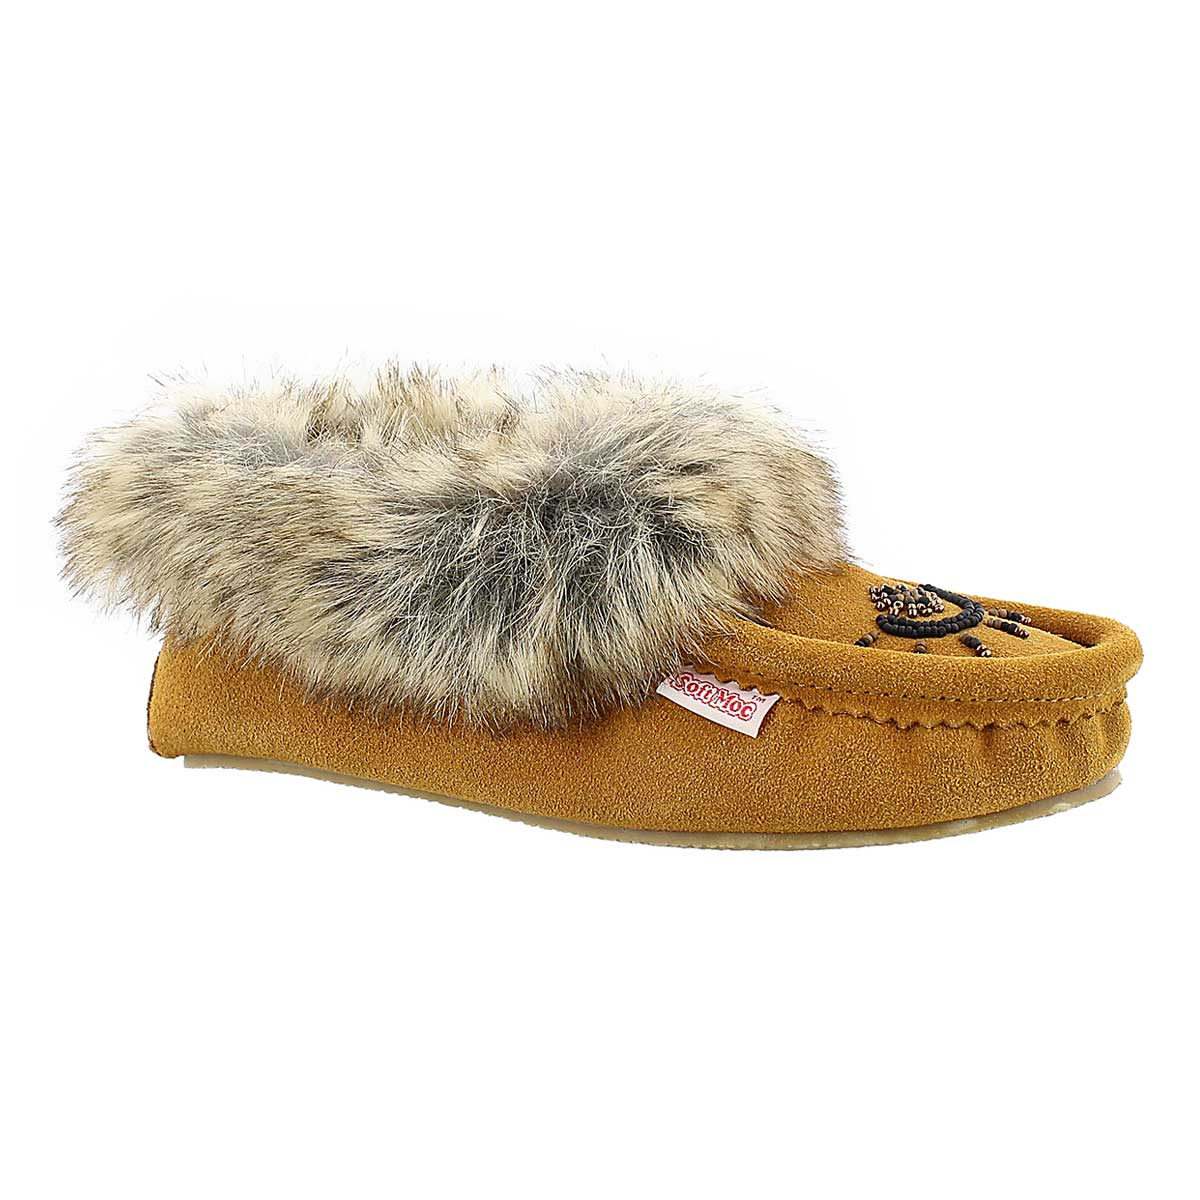 Women's CUTE FAUX ME tan crepe sole moccasins